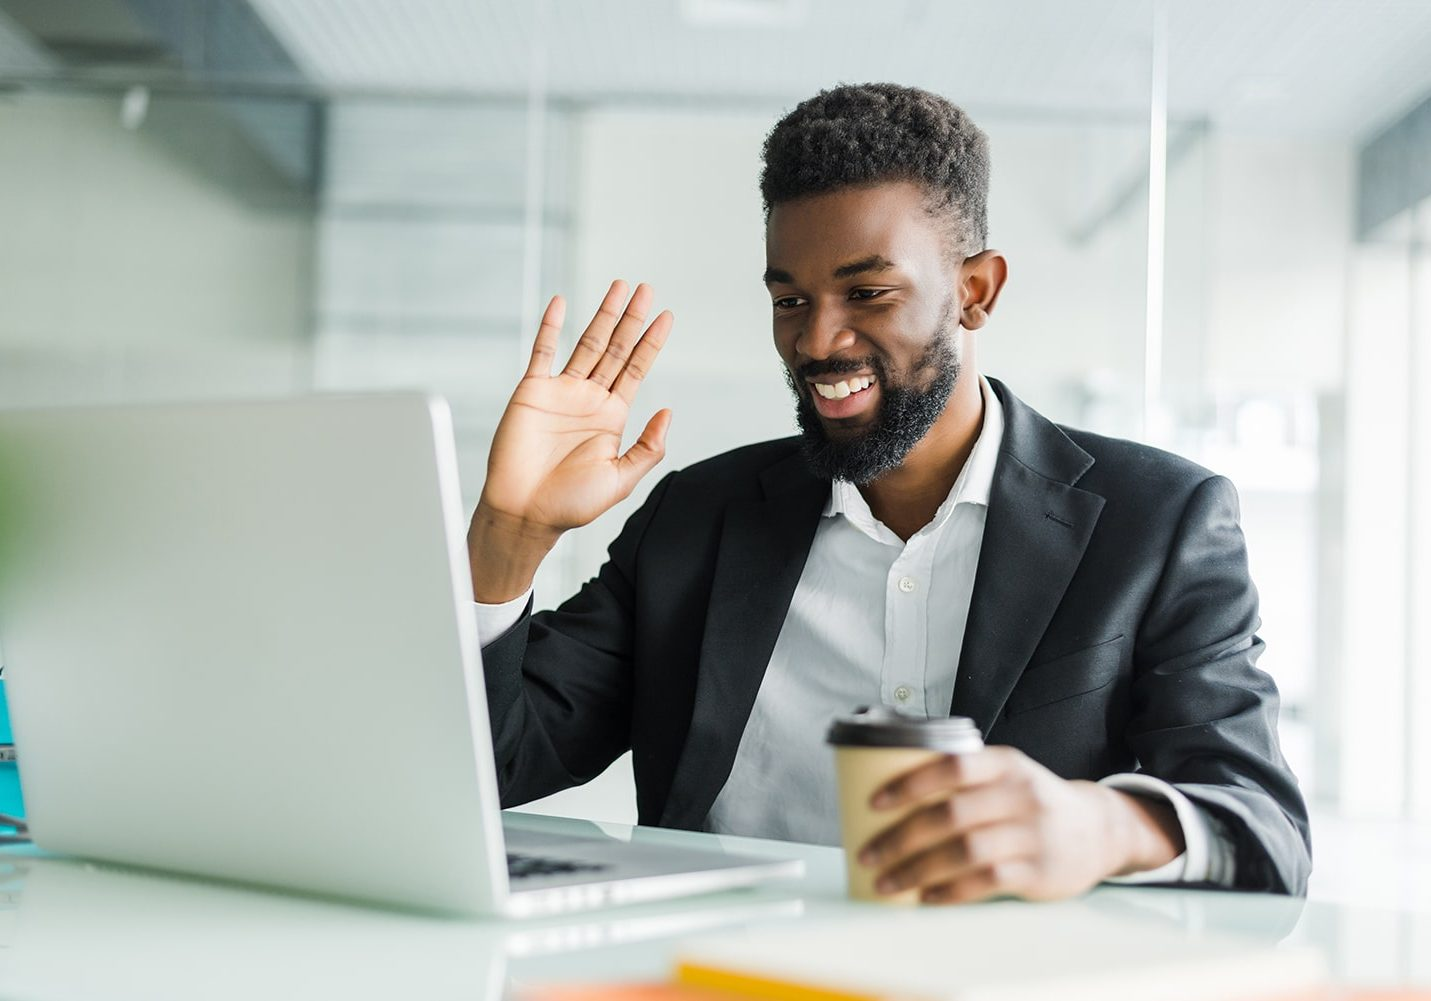 Young African manager with stubble sitting in front of open laptop wearing earphones while having video conference call with business partners